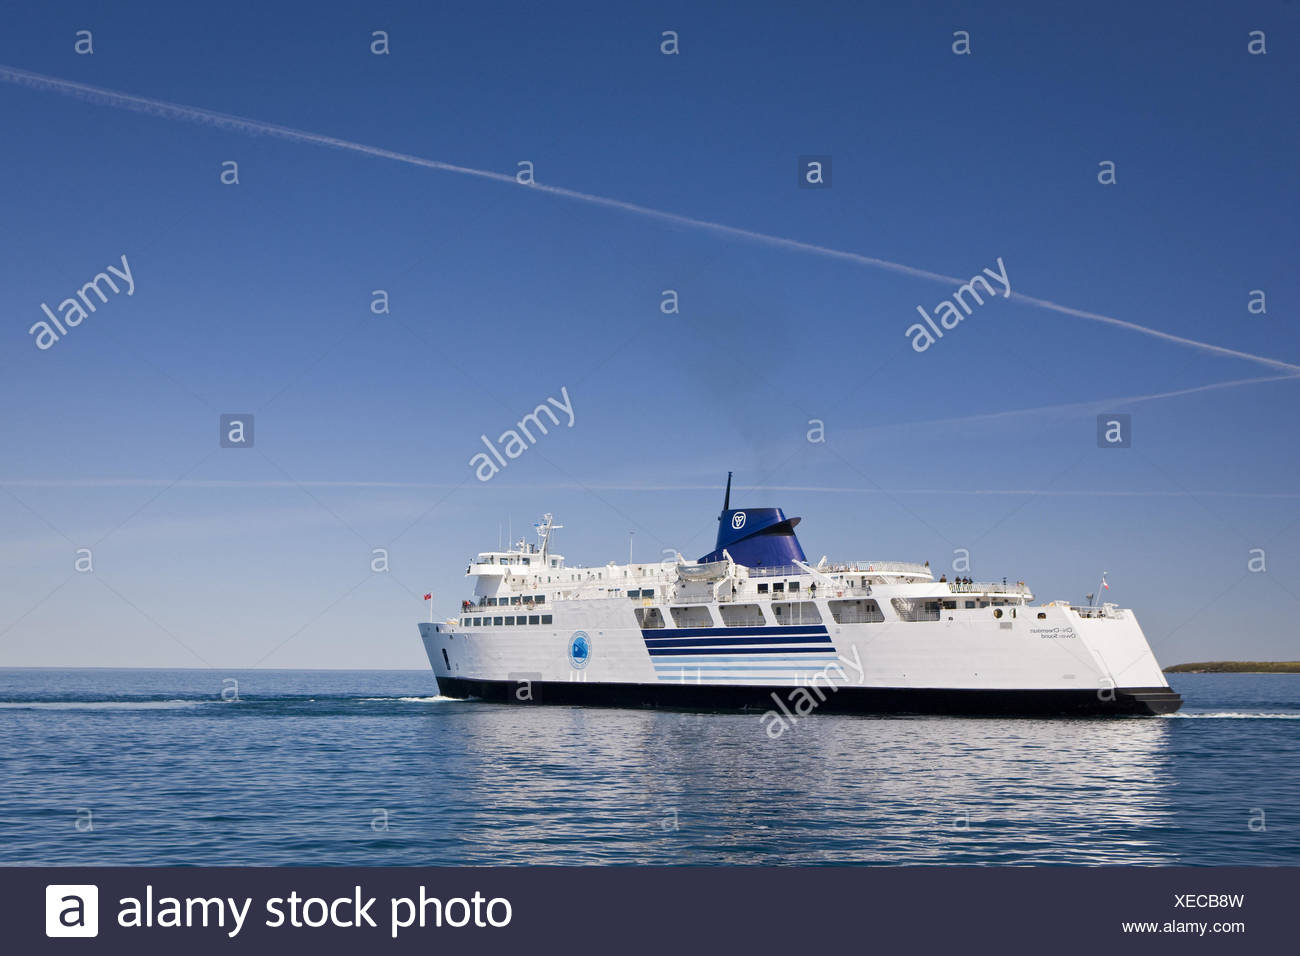 Canada Ontario Tobermory Bruce Peninsula Brine Huron Ferry Chi Cheemaun Stock Photo Alamy